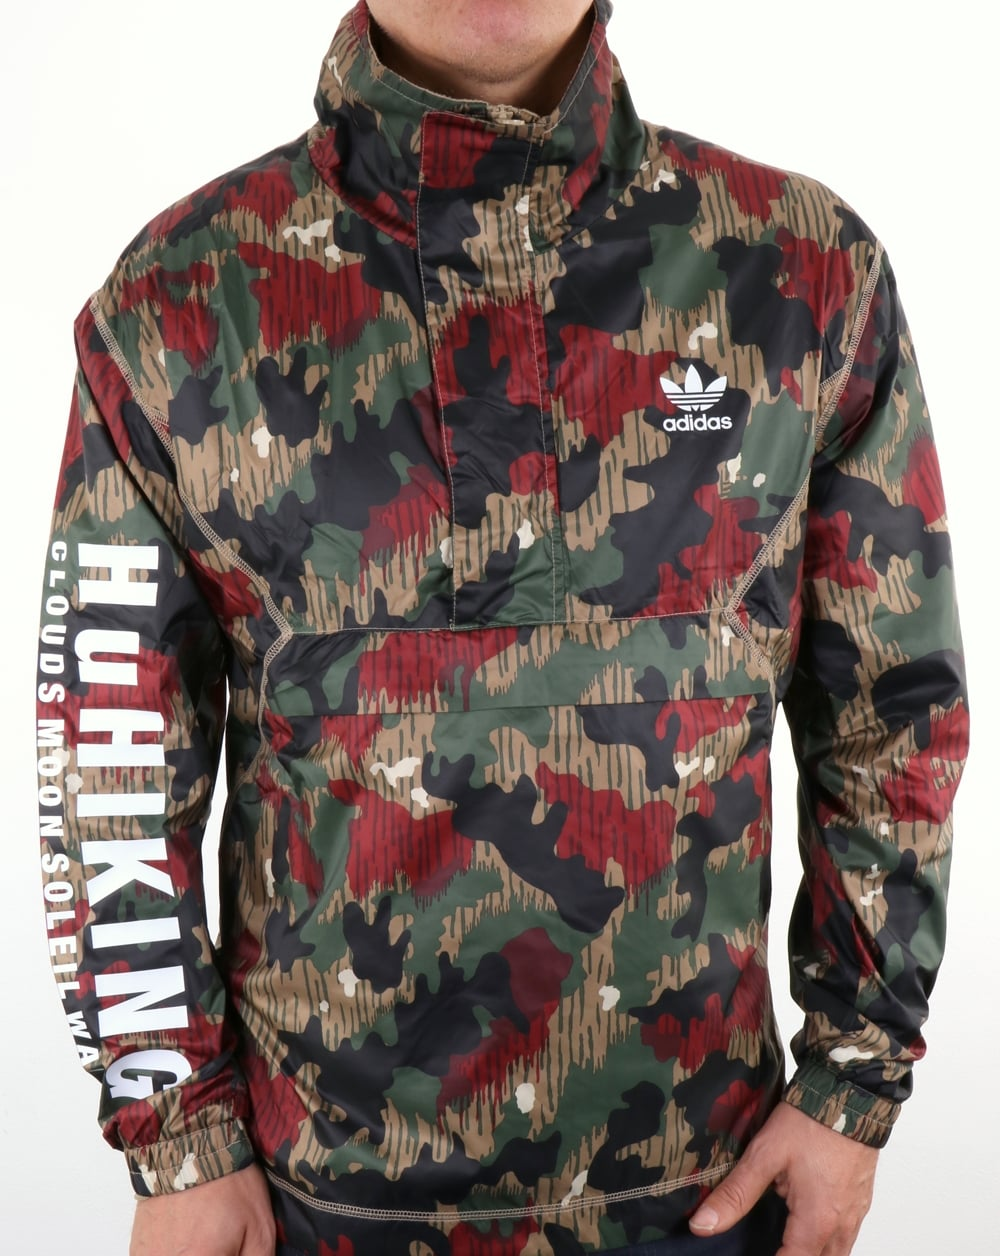 Adidas Originals Hiking Half Zip Camo Windbreaker Pharell